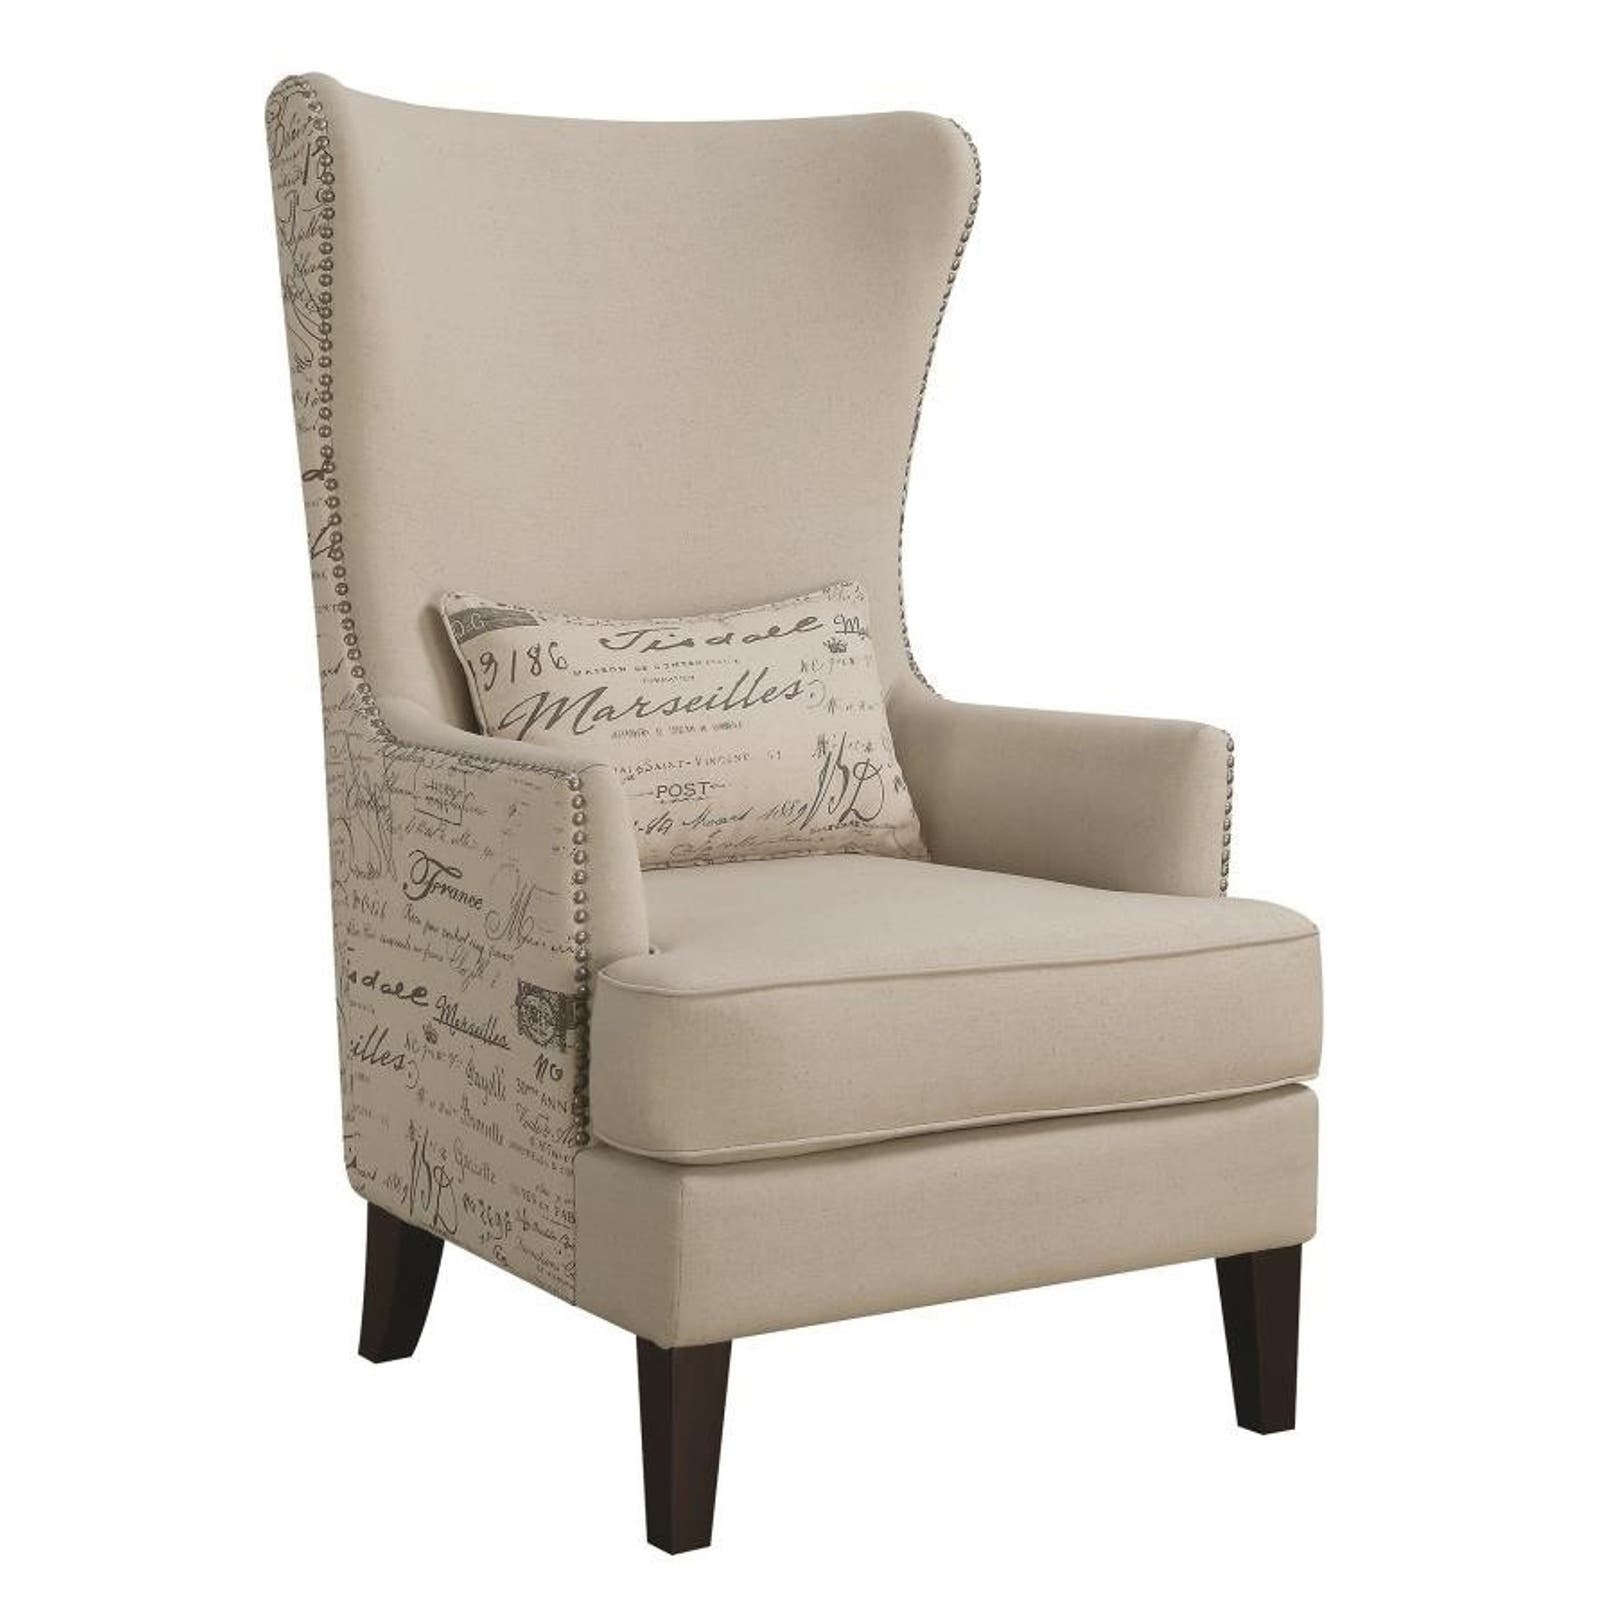 Buy Living Room Chairs Online At Overstock.com